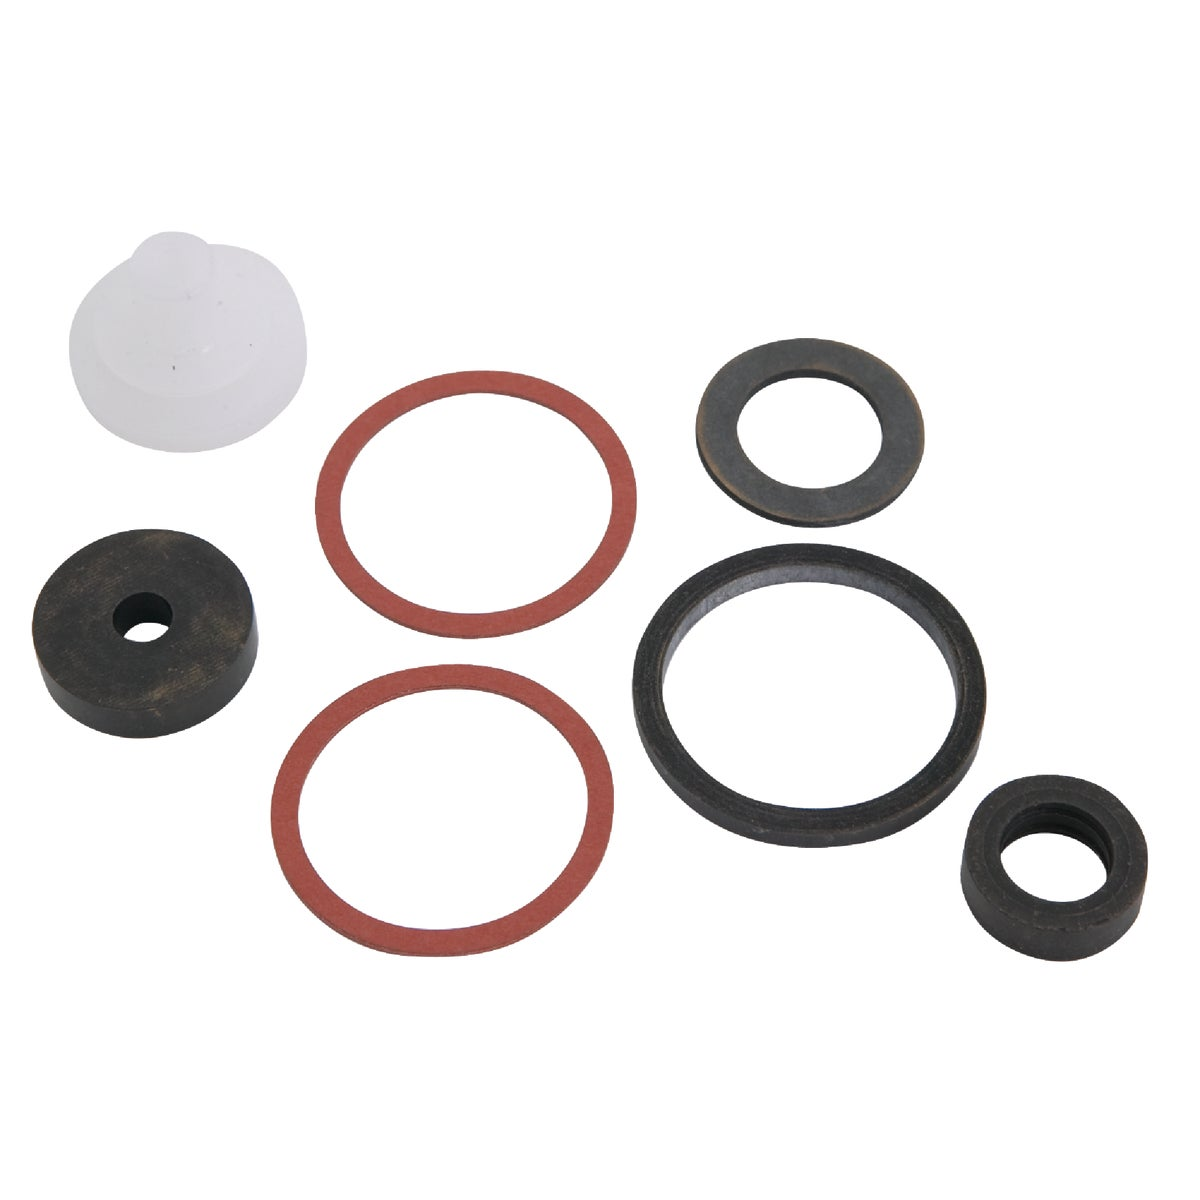 "3/4"" VALVE REBUILD KIT - RK30C by Champion Arrowhead"